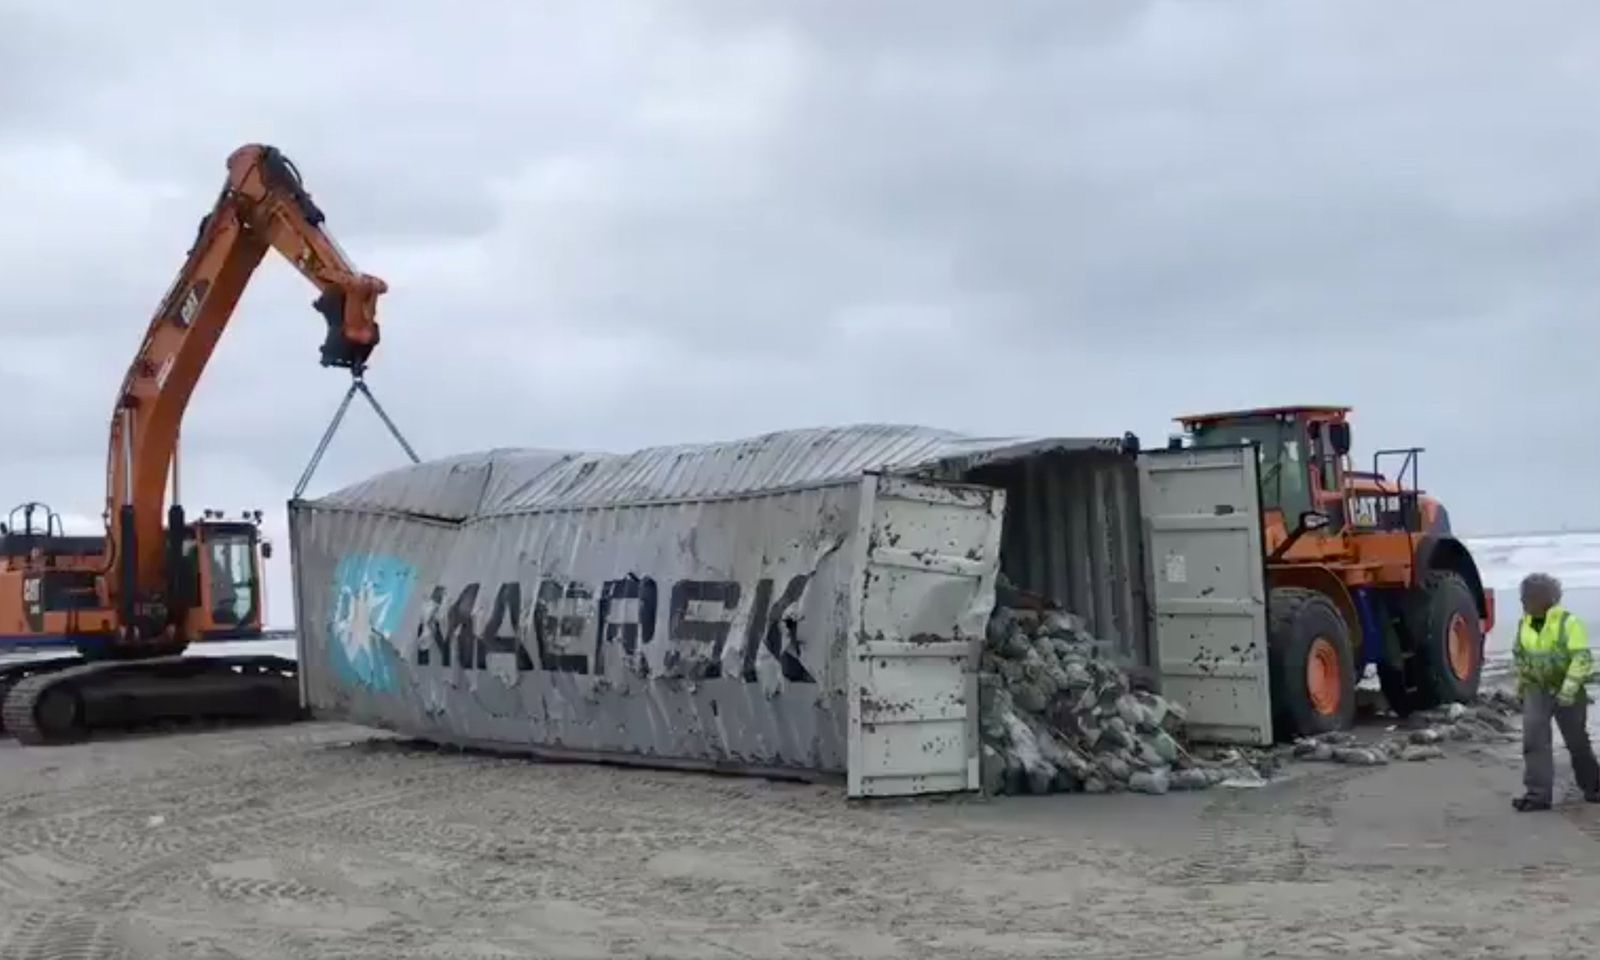 Heavy machinery lift cargo container after it washed up on beach in Vlieland